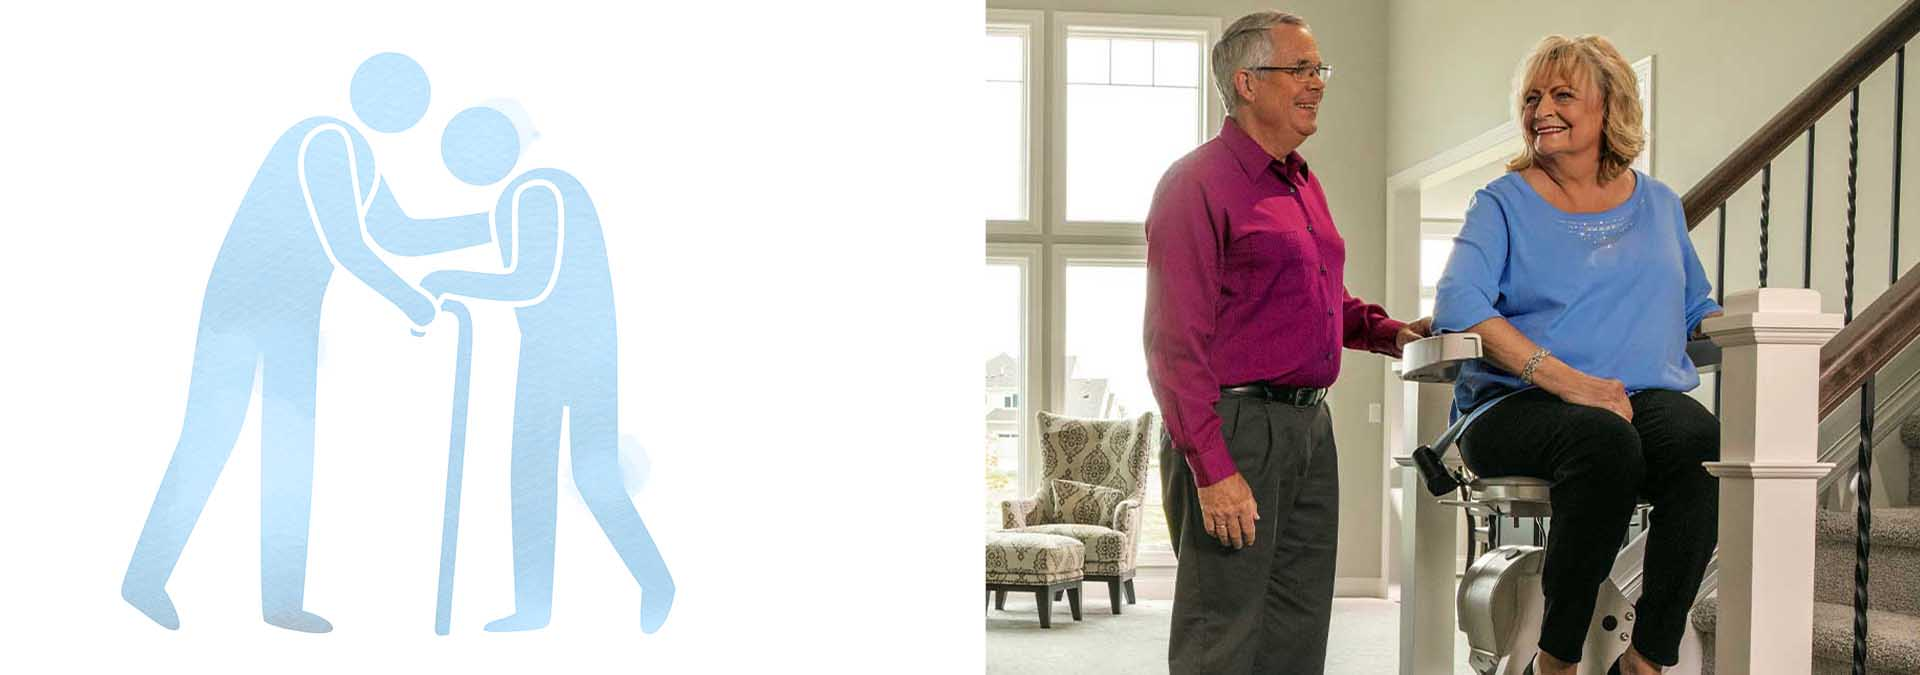 woman smiling on stairlift-man standing-